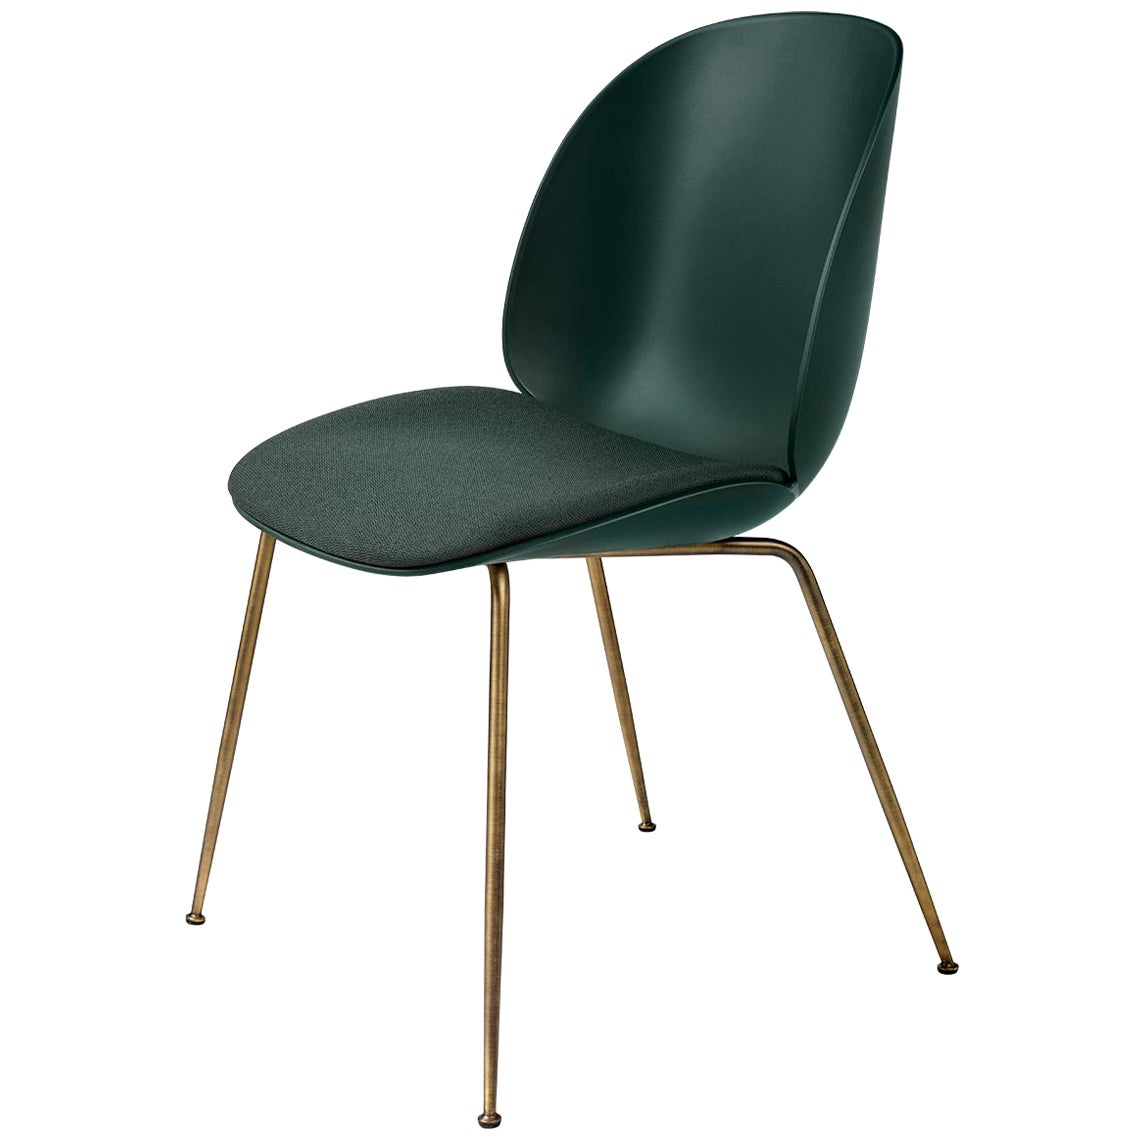 Beetle Dining Chair, Seat Upholstered, Conic Base, Antique Brass